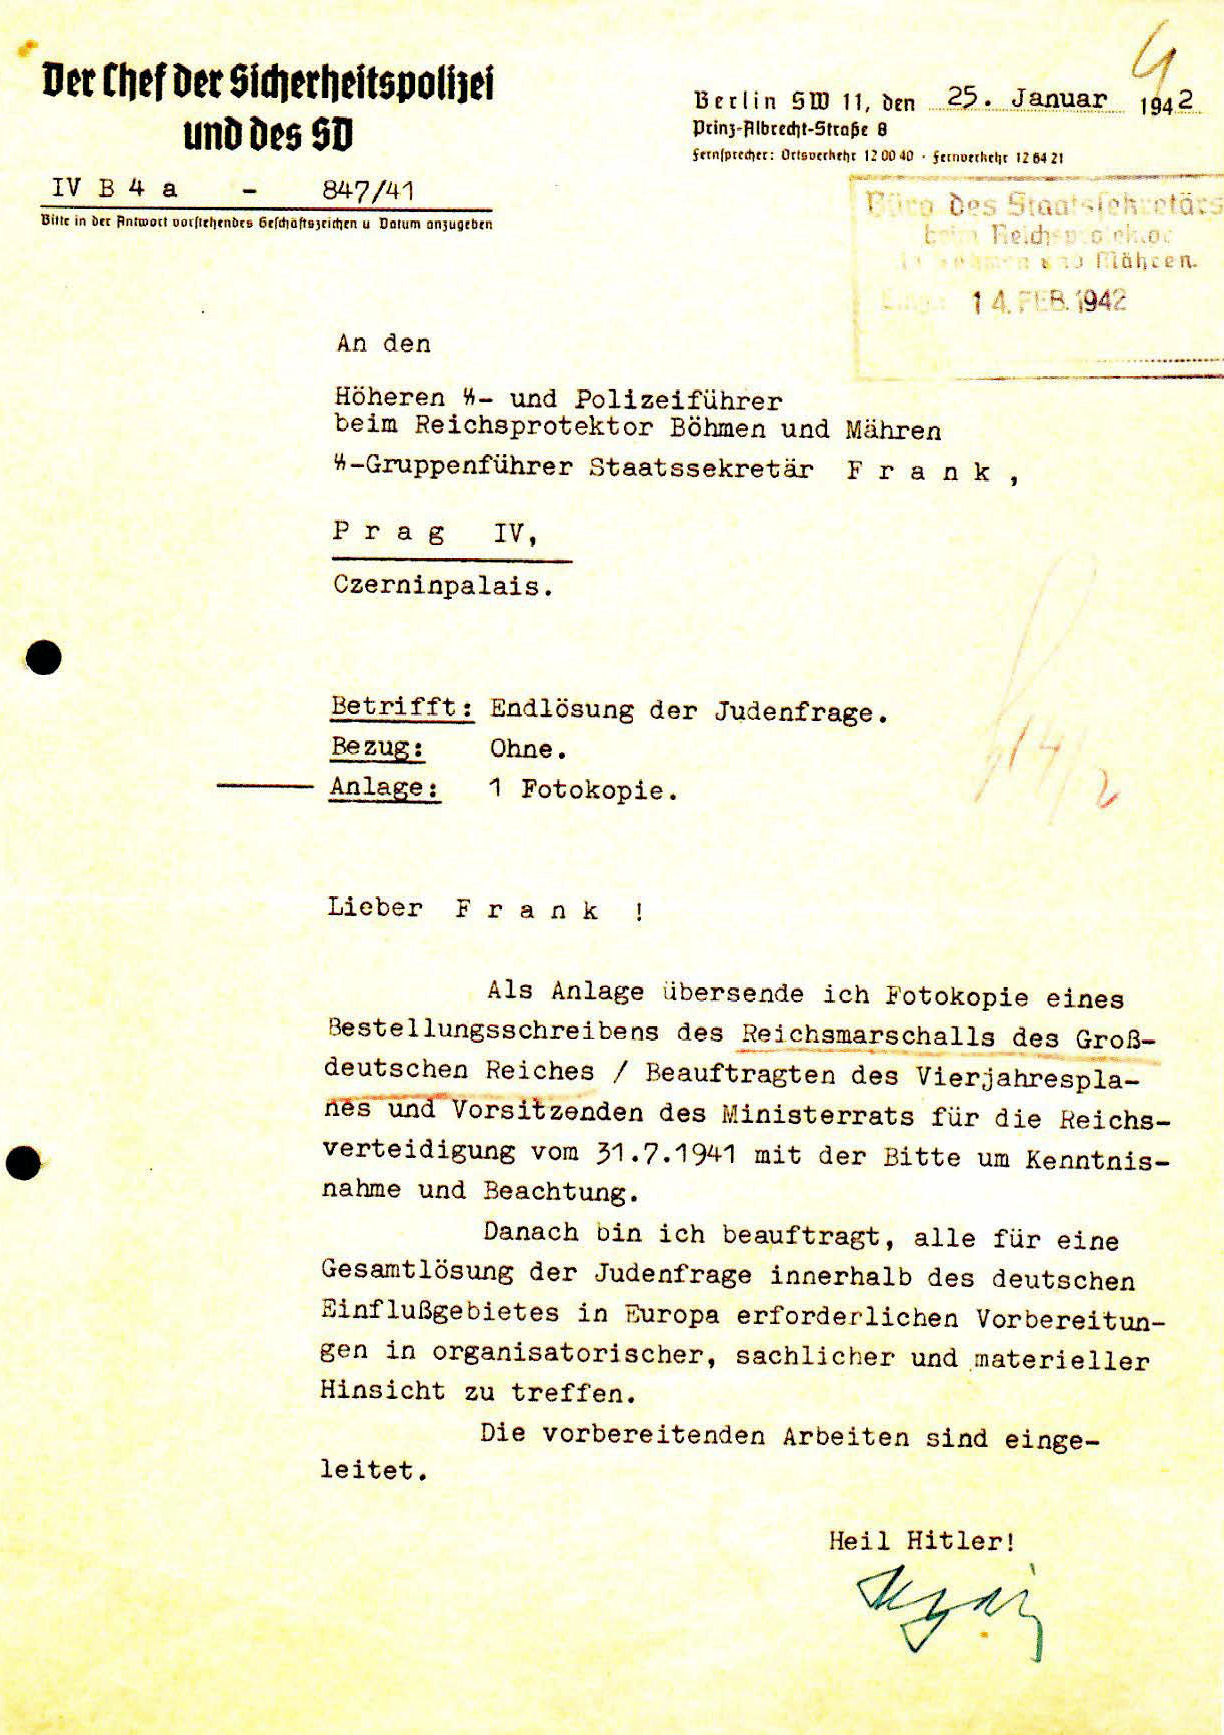 Heydrich letter concerning the Final Solution